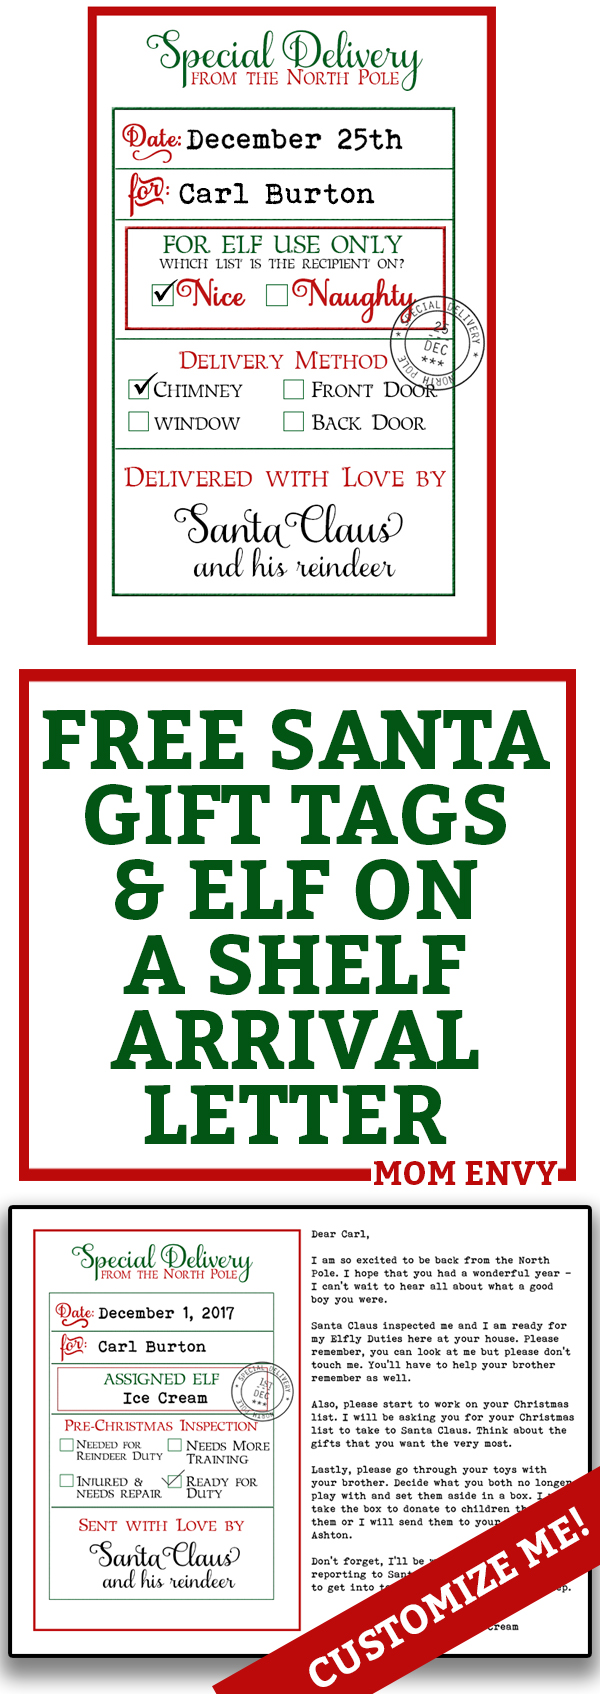 Free Custom Santa Gift Tags And Elf Arrival Letter   Free Printables